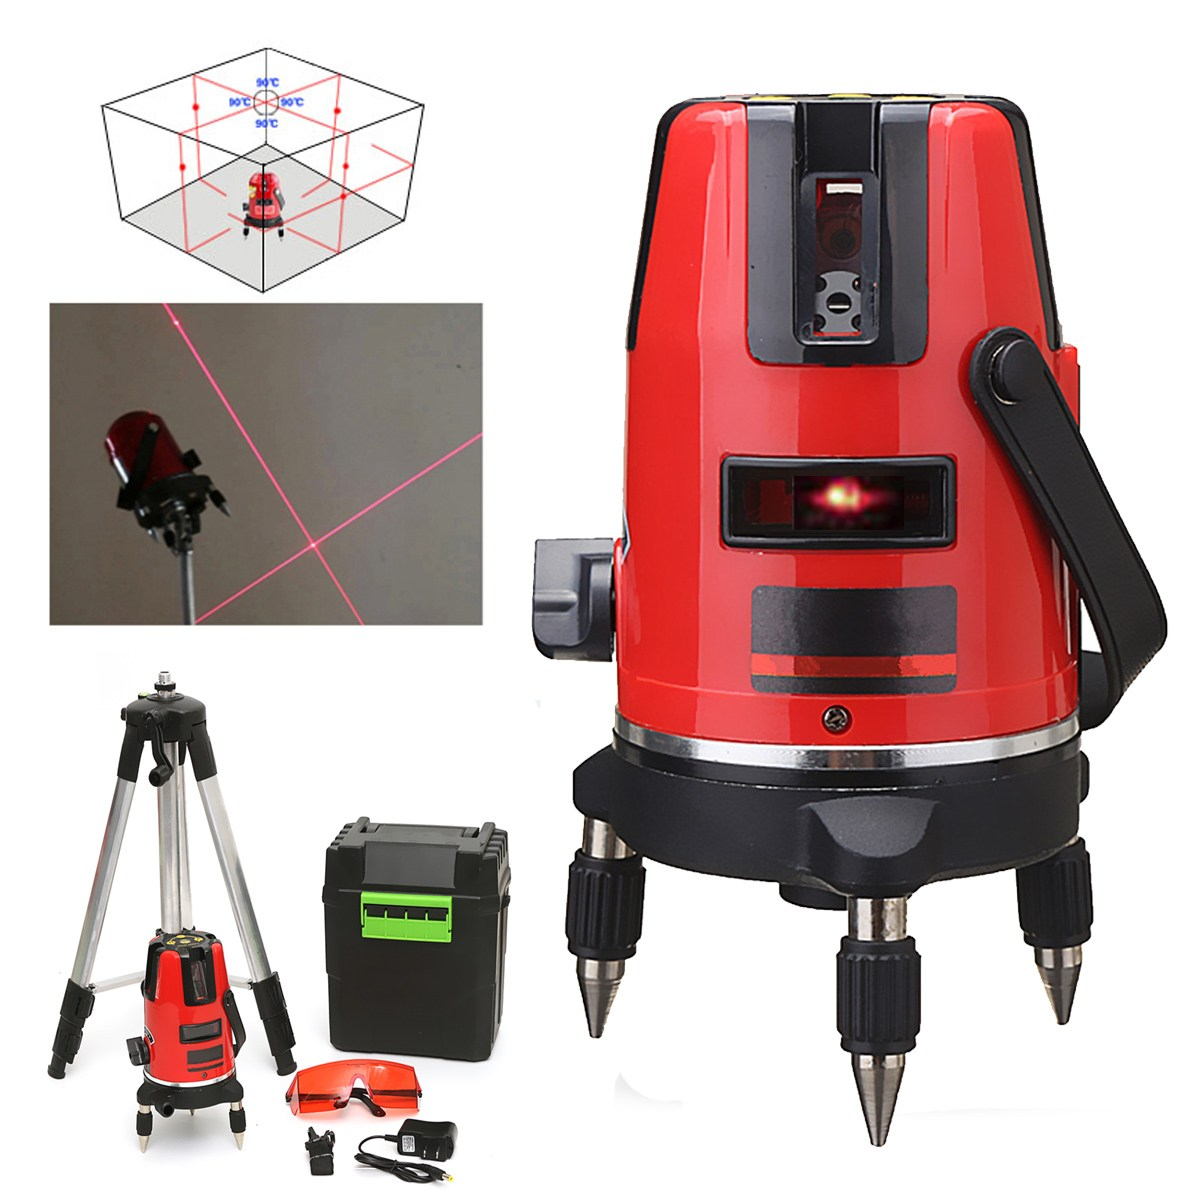 New 5 Line 6 Point Cross Line Red Automatic Self Leveling 360 degree Rotary Laser Level Meter Measure + Tripod hilda 360 degree self leveling cross laser level 1v1h red 2 line 1 point rotary horizontal vertical red laser levels cross laser